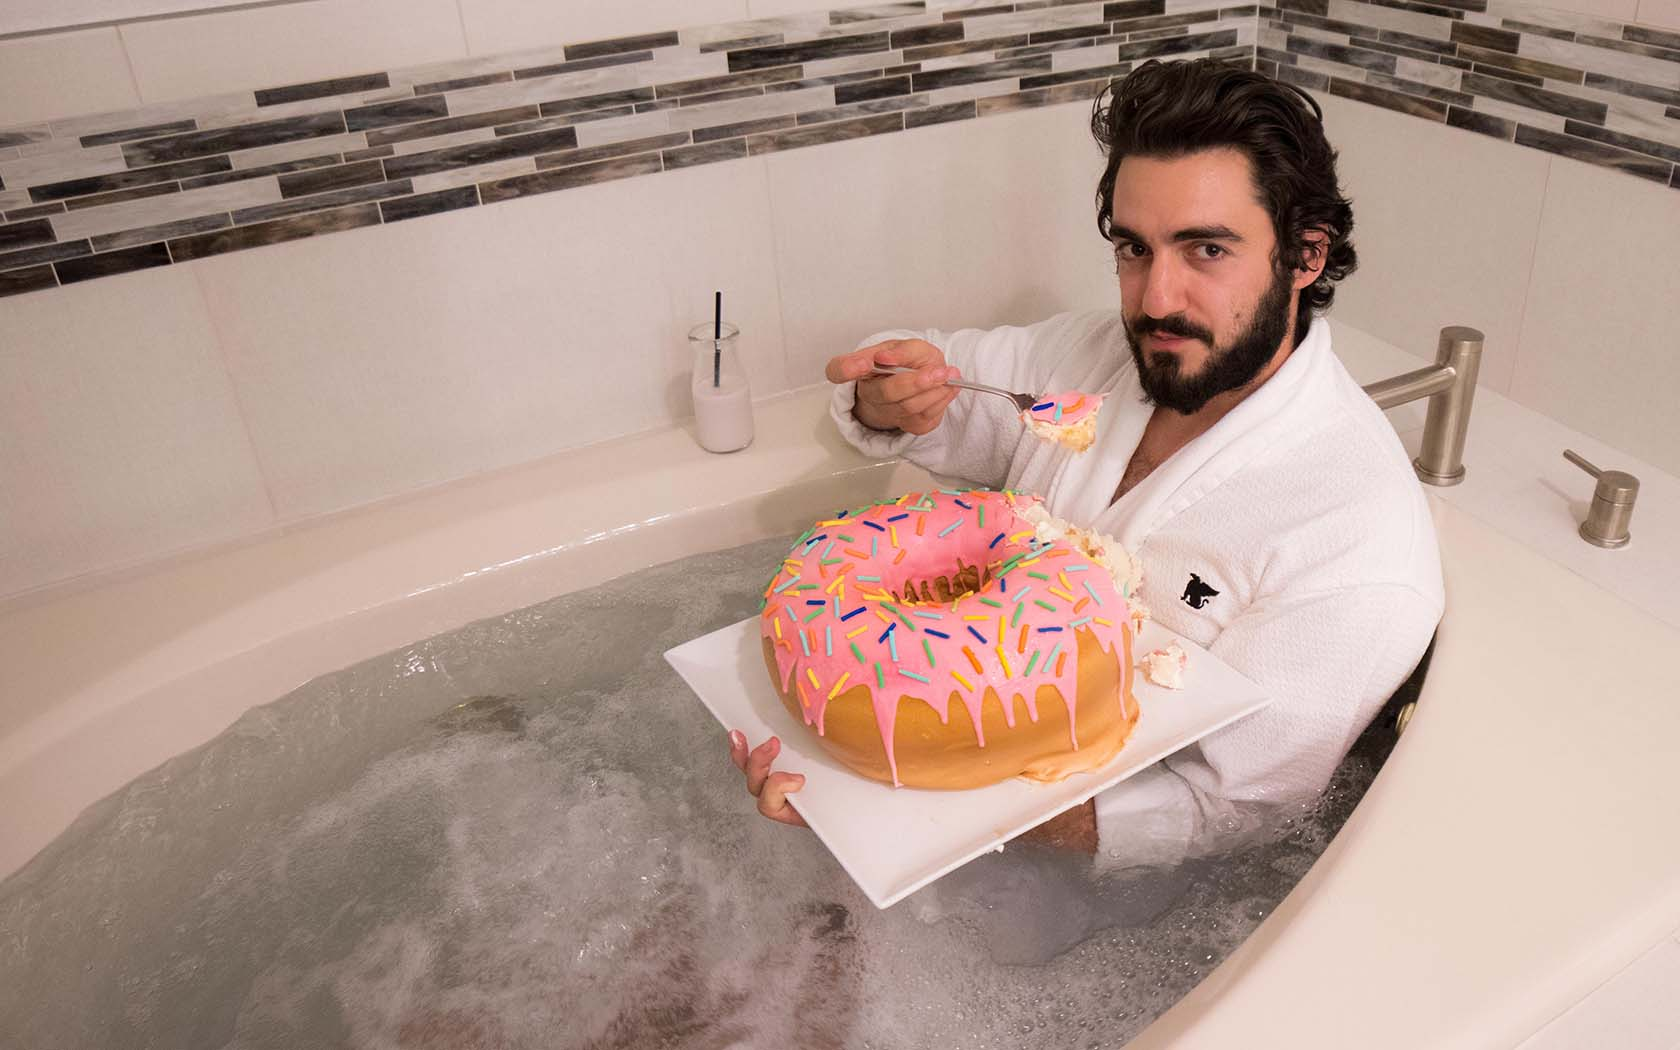 Bathtub Cake Layer